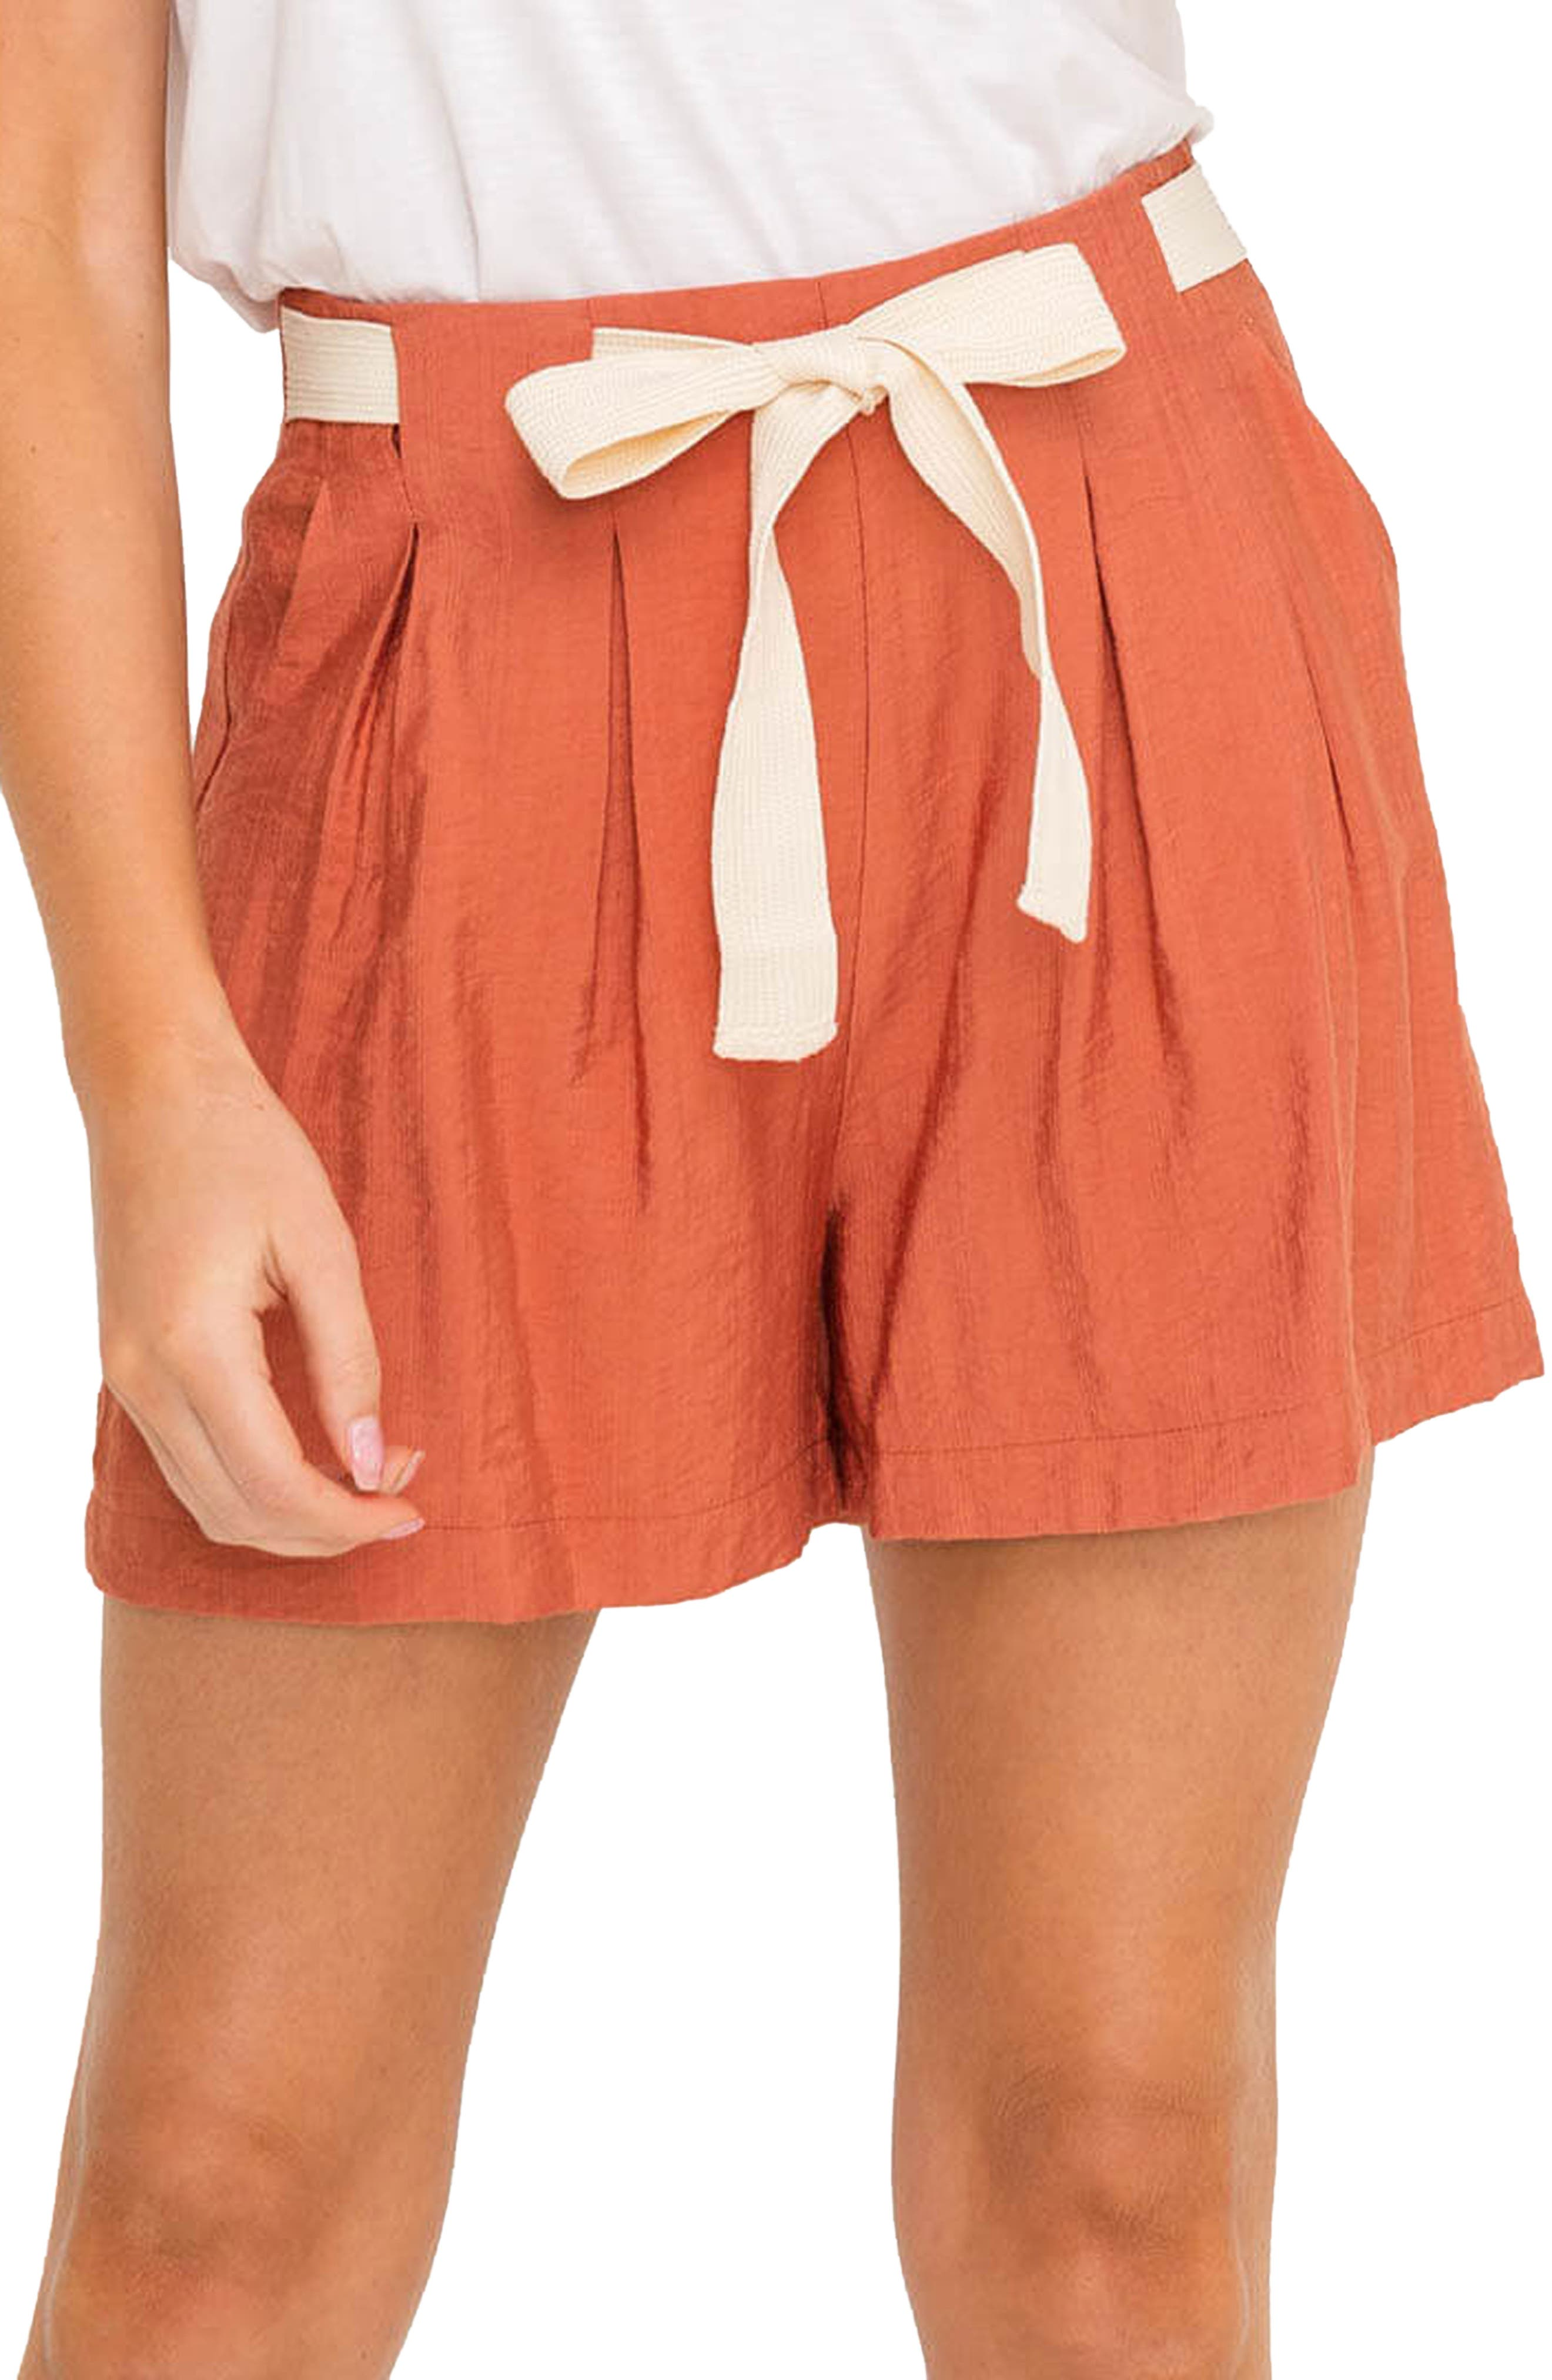 Cute and preppy shorts cut from lightweight, drapey fabric feature a twill-tape tie to cinch the waist and front pleats for a loose, airy fit. Style Name: All In Favor Front Tie Pleated Shorts. Style Number: 6031985. Available in stores.